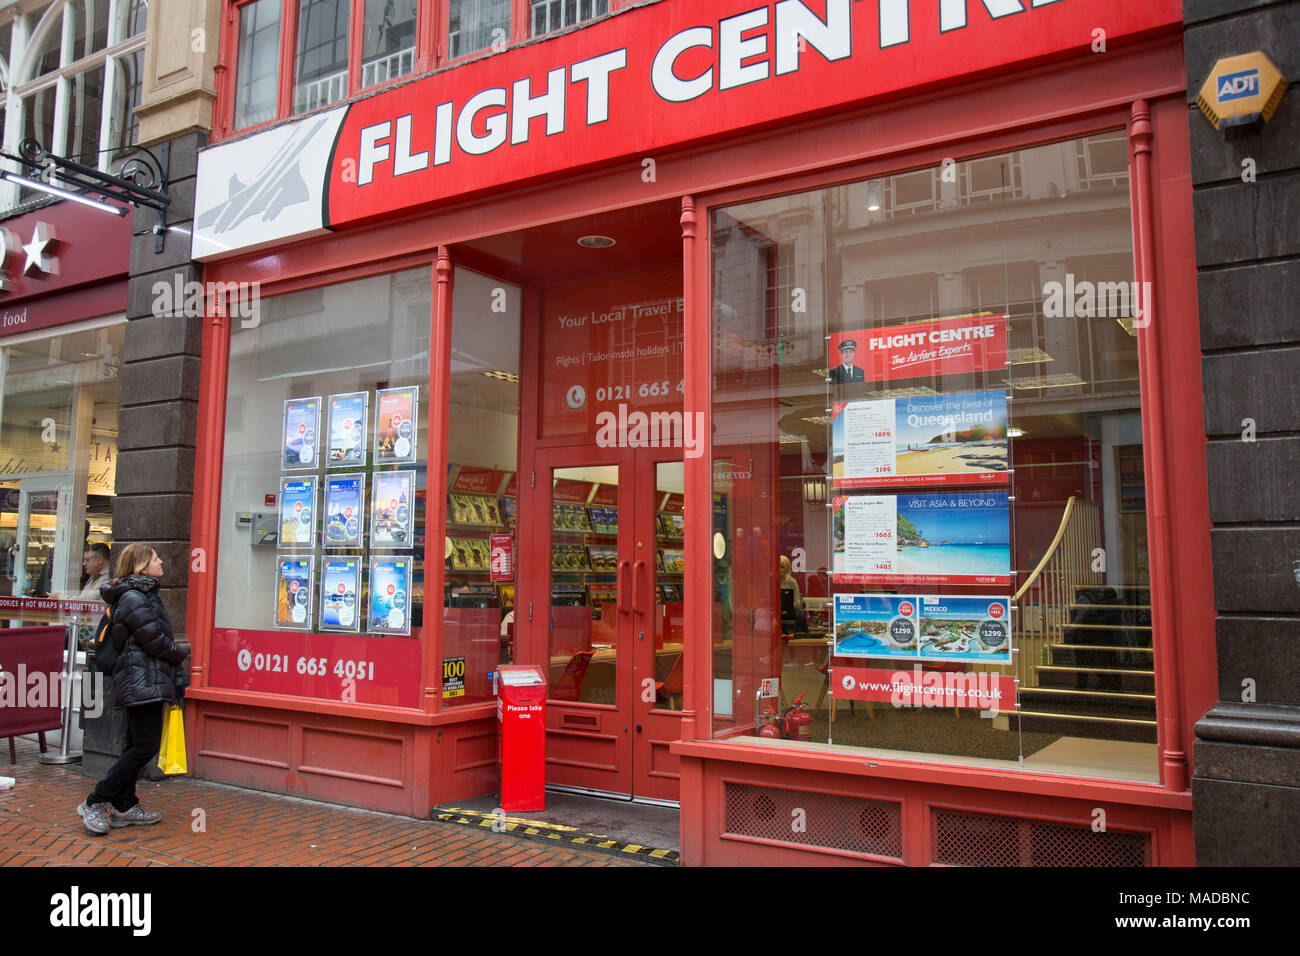 Young female looking at adverts in the window of the Flight Centre store in Birmingham, England. - Stock Image